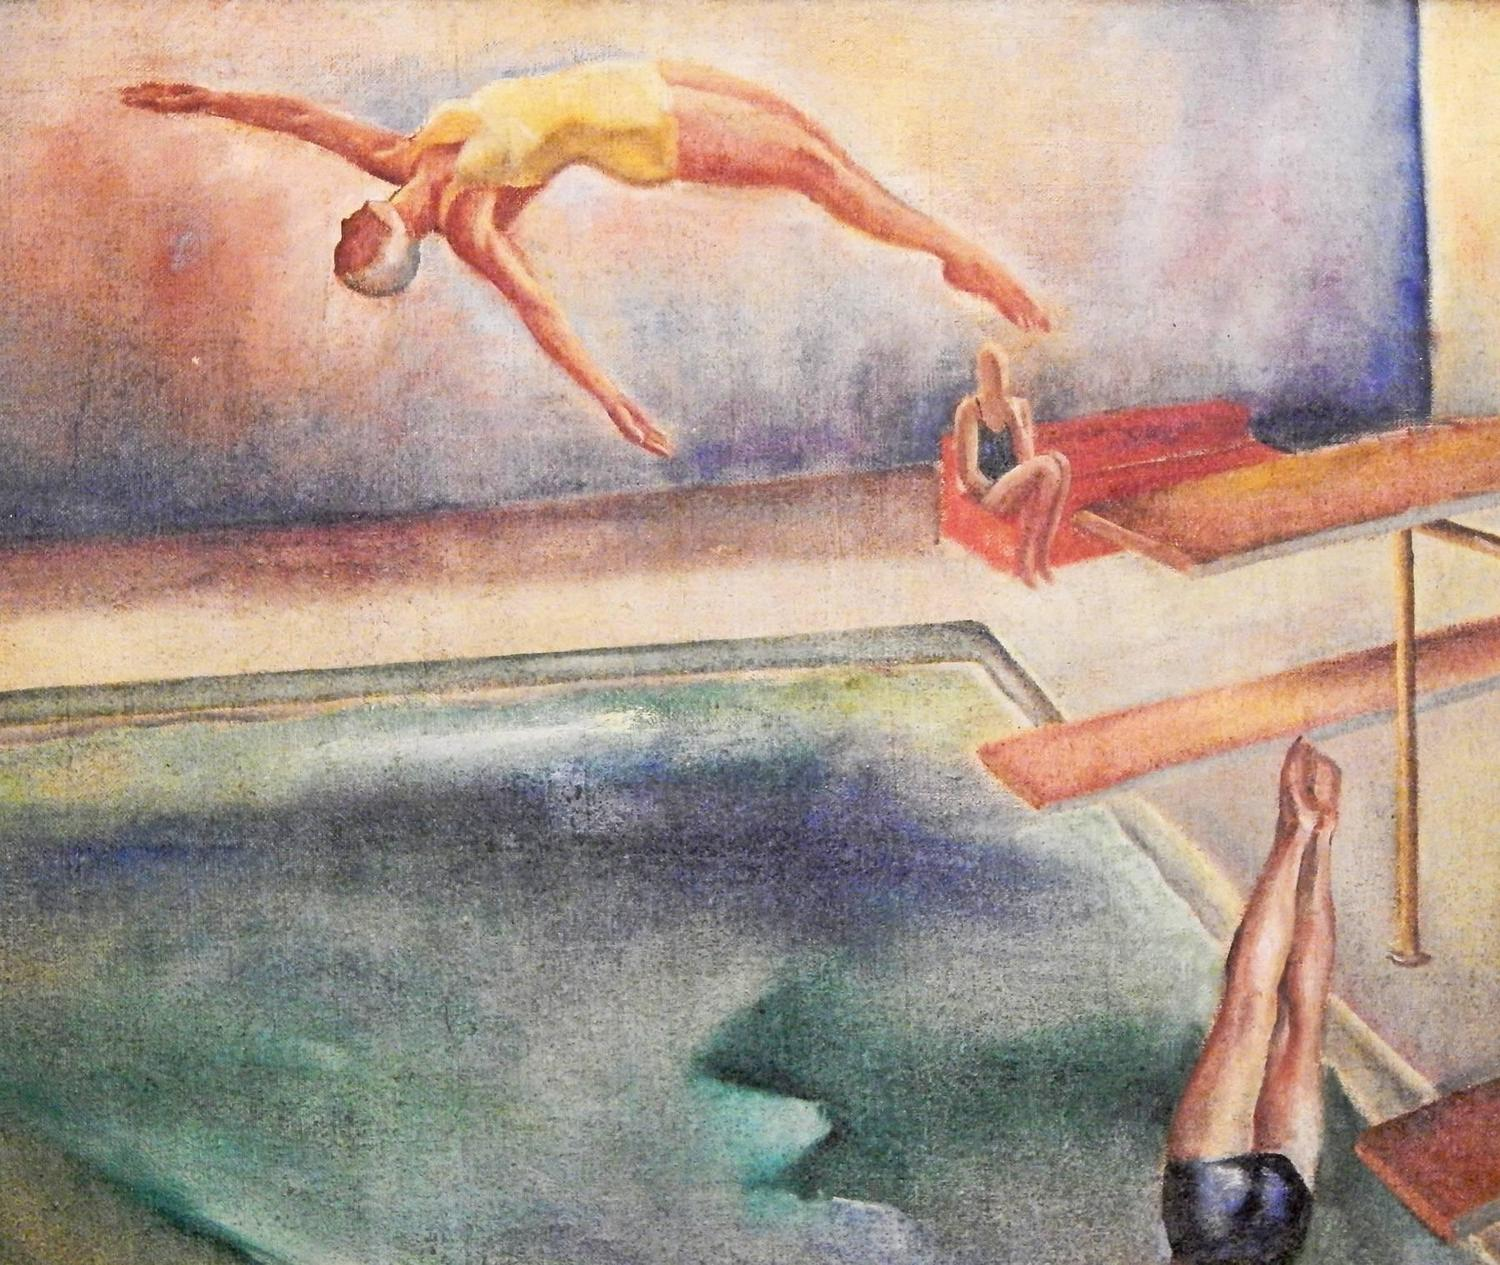 Quot Swimming Pool Quot Masterful Panoramic Art Deco Painting By